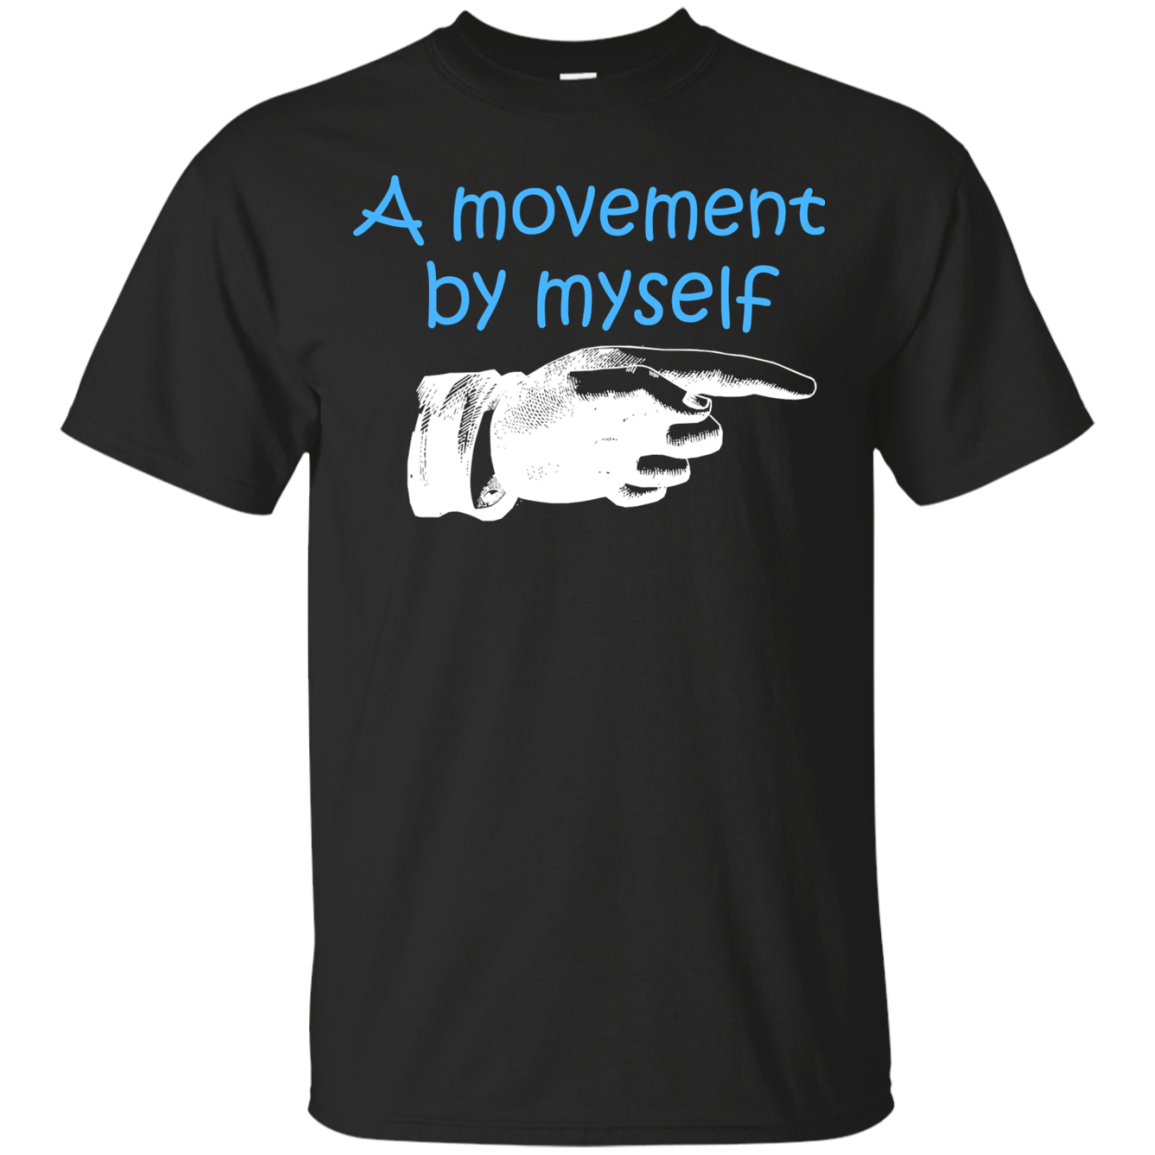 A MOVEMENT BY MYSELF T-Shirt & Hoodie